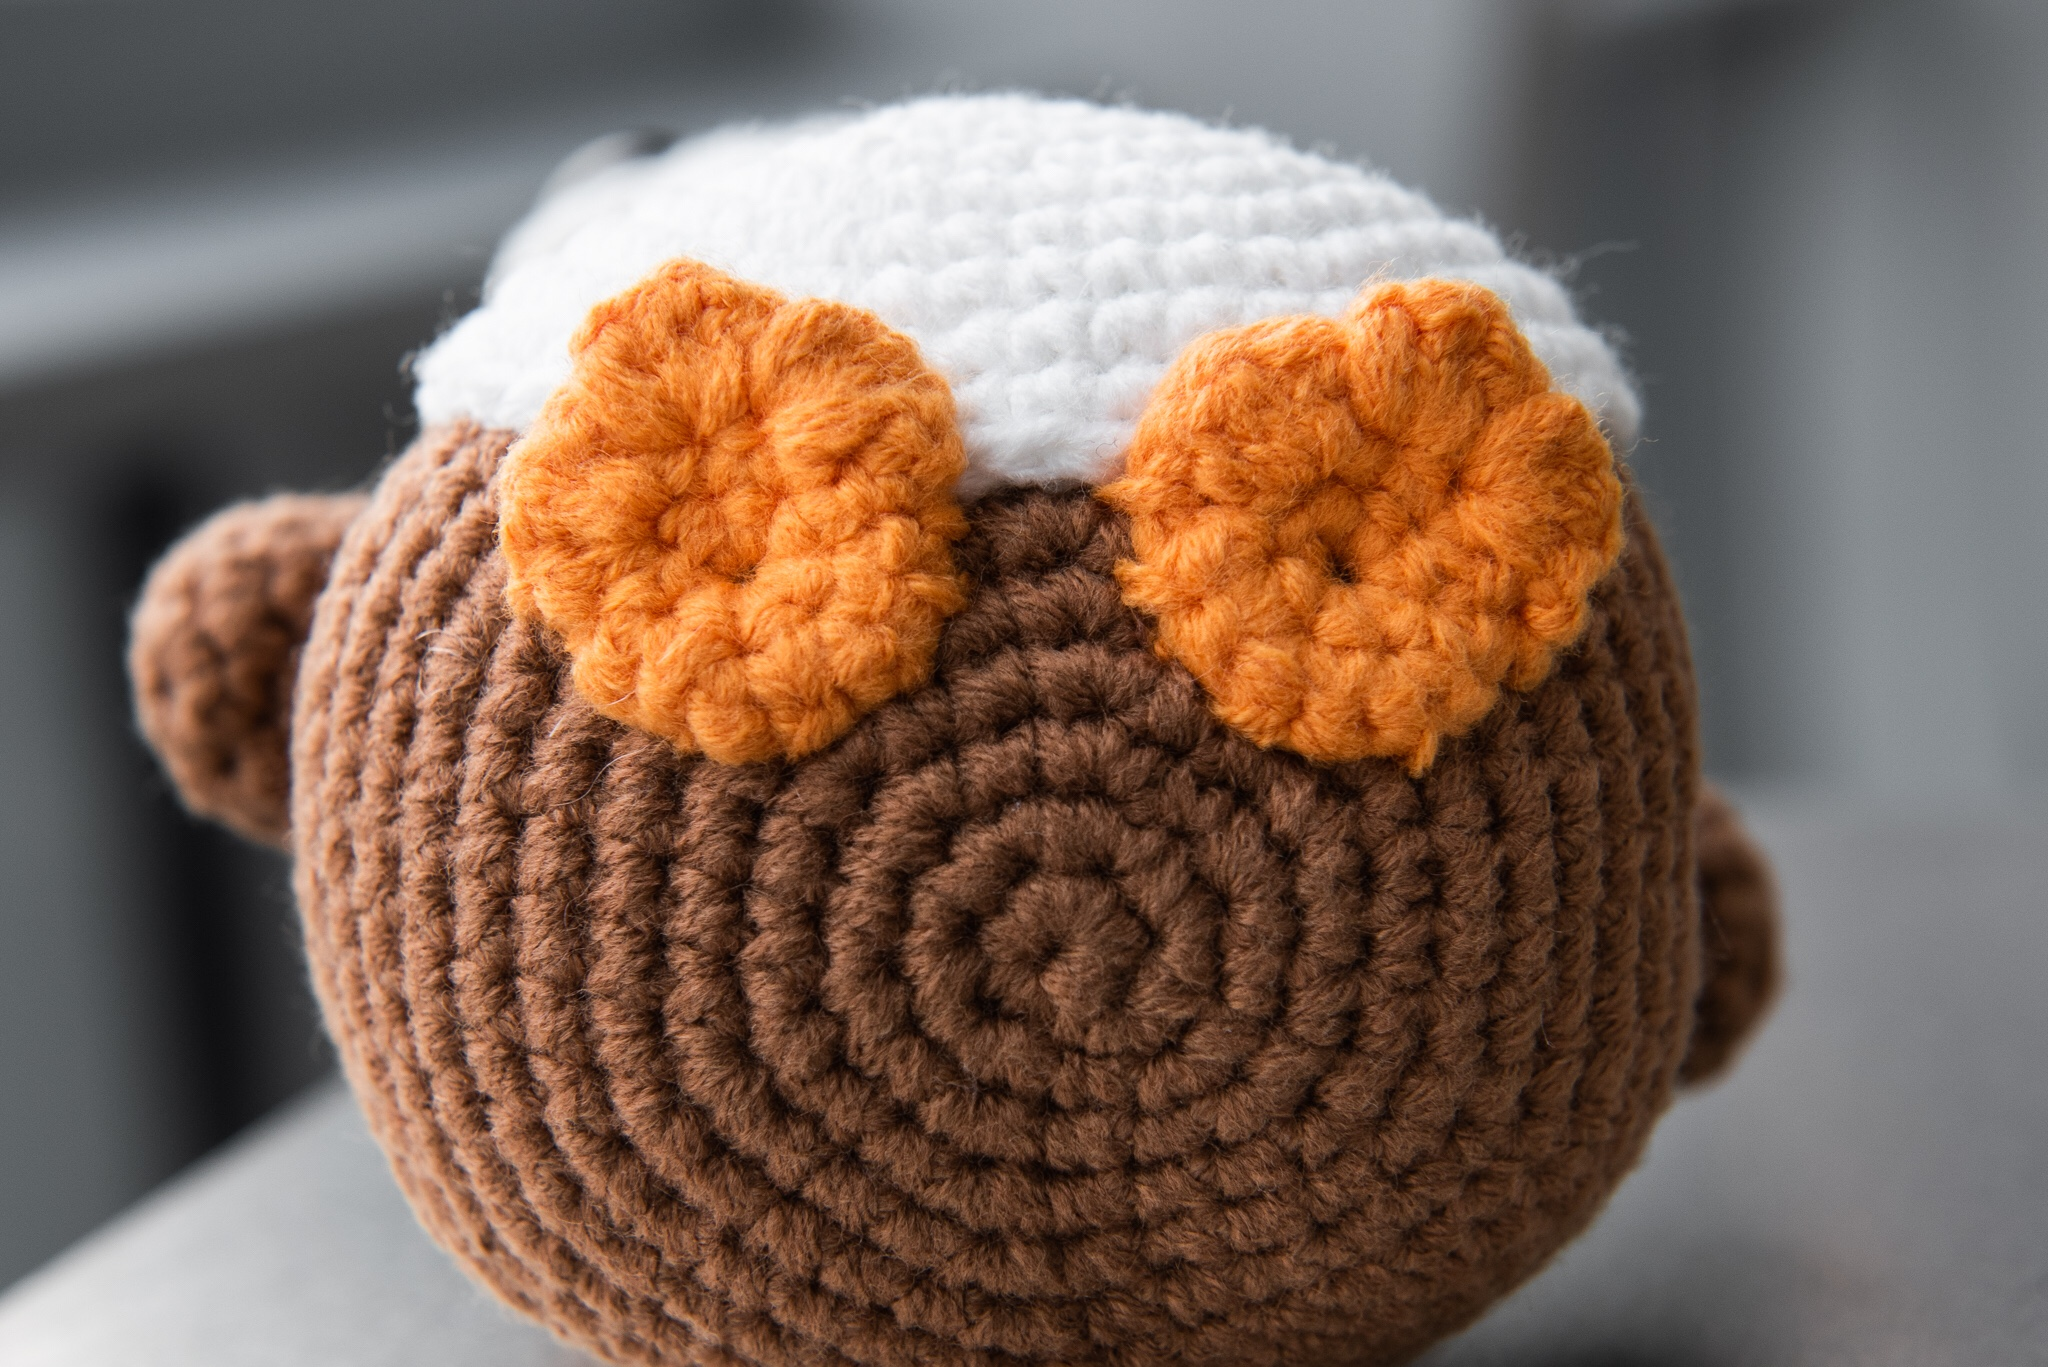 tiny rabbit hole porg star wars days may the fourth may the force be with you crochet amigurumi cute stuffed toys plushies handmade craft arts singapore workshop free pattern